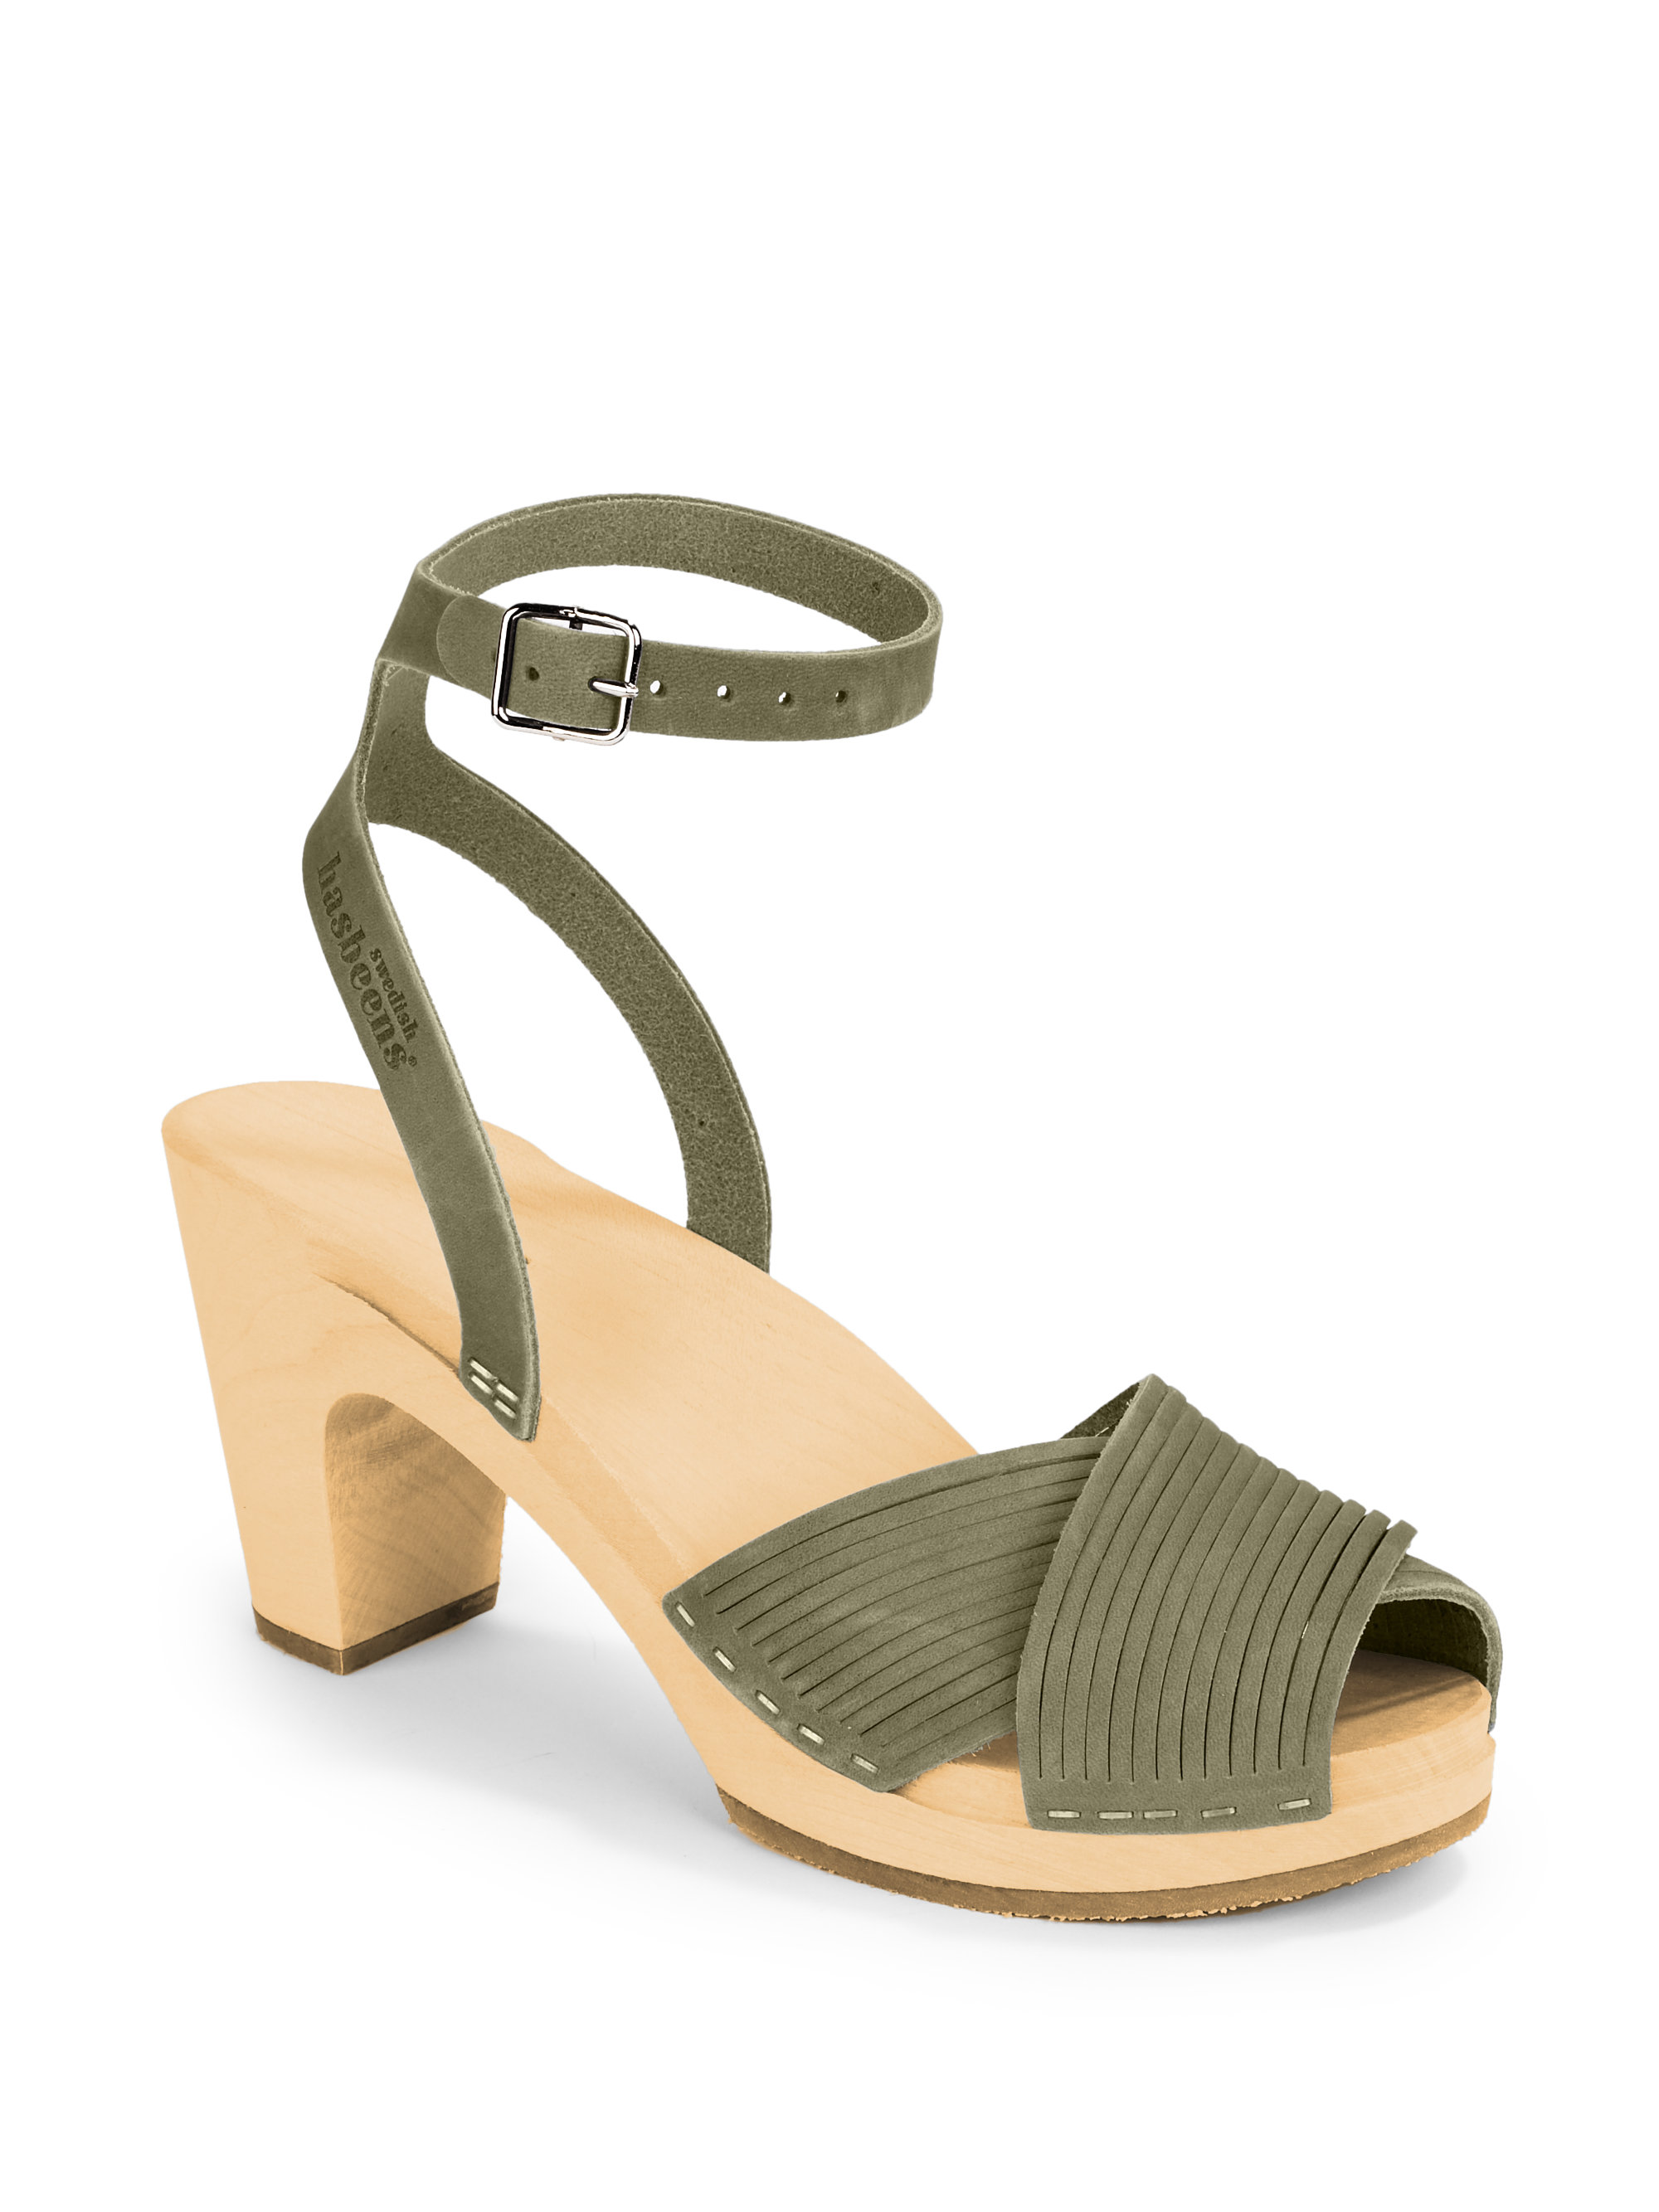 Lyst - Swedish Hasbeens Strappy Clog Sandals in Gray 936405d07